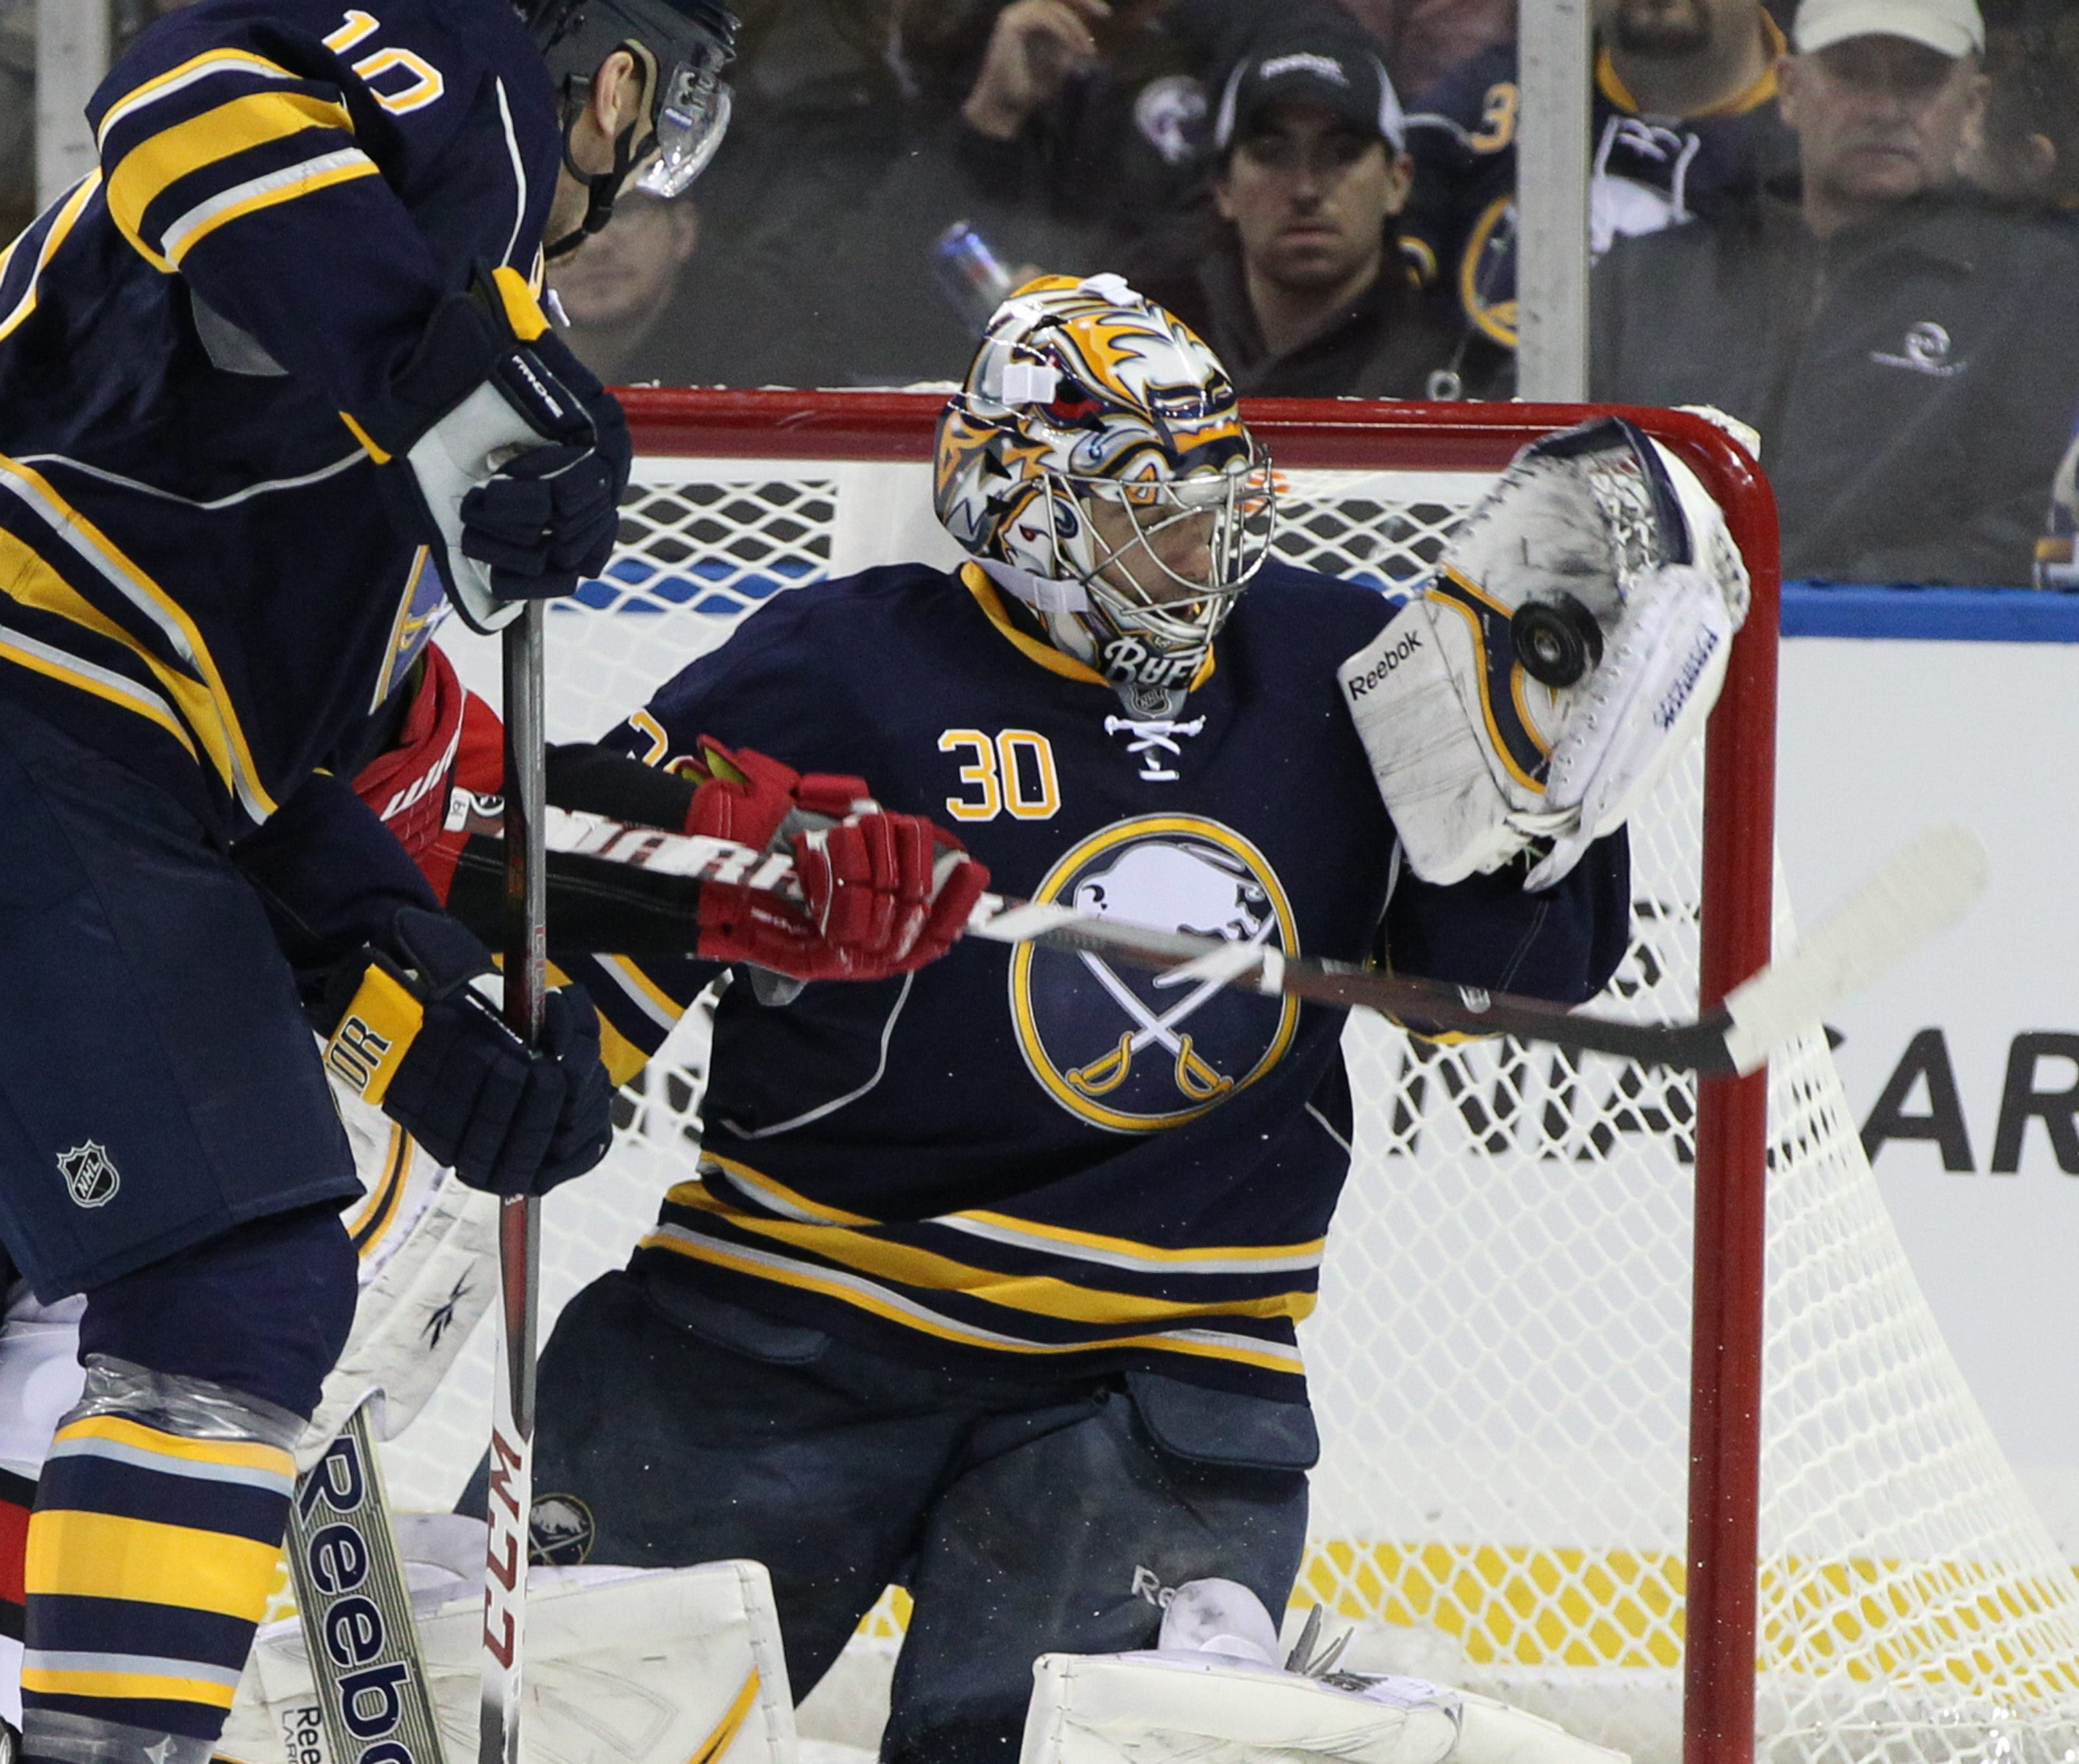 The Sabres might have to look at dealing veteran goaltender Ryan Miller to get a higher pick.